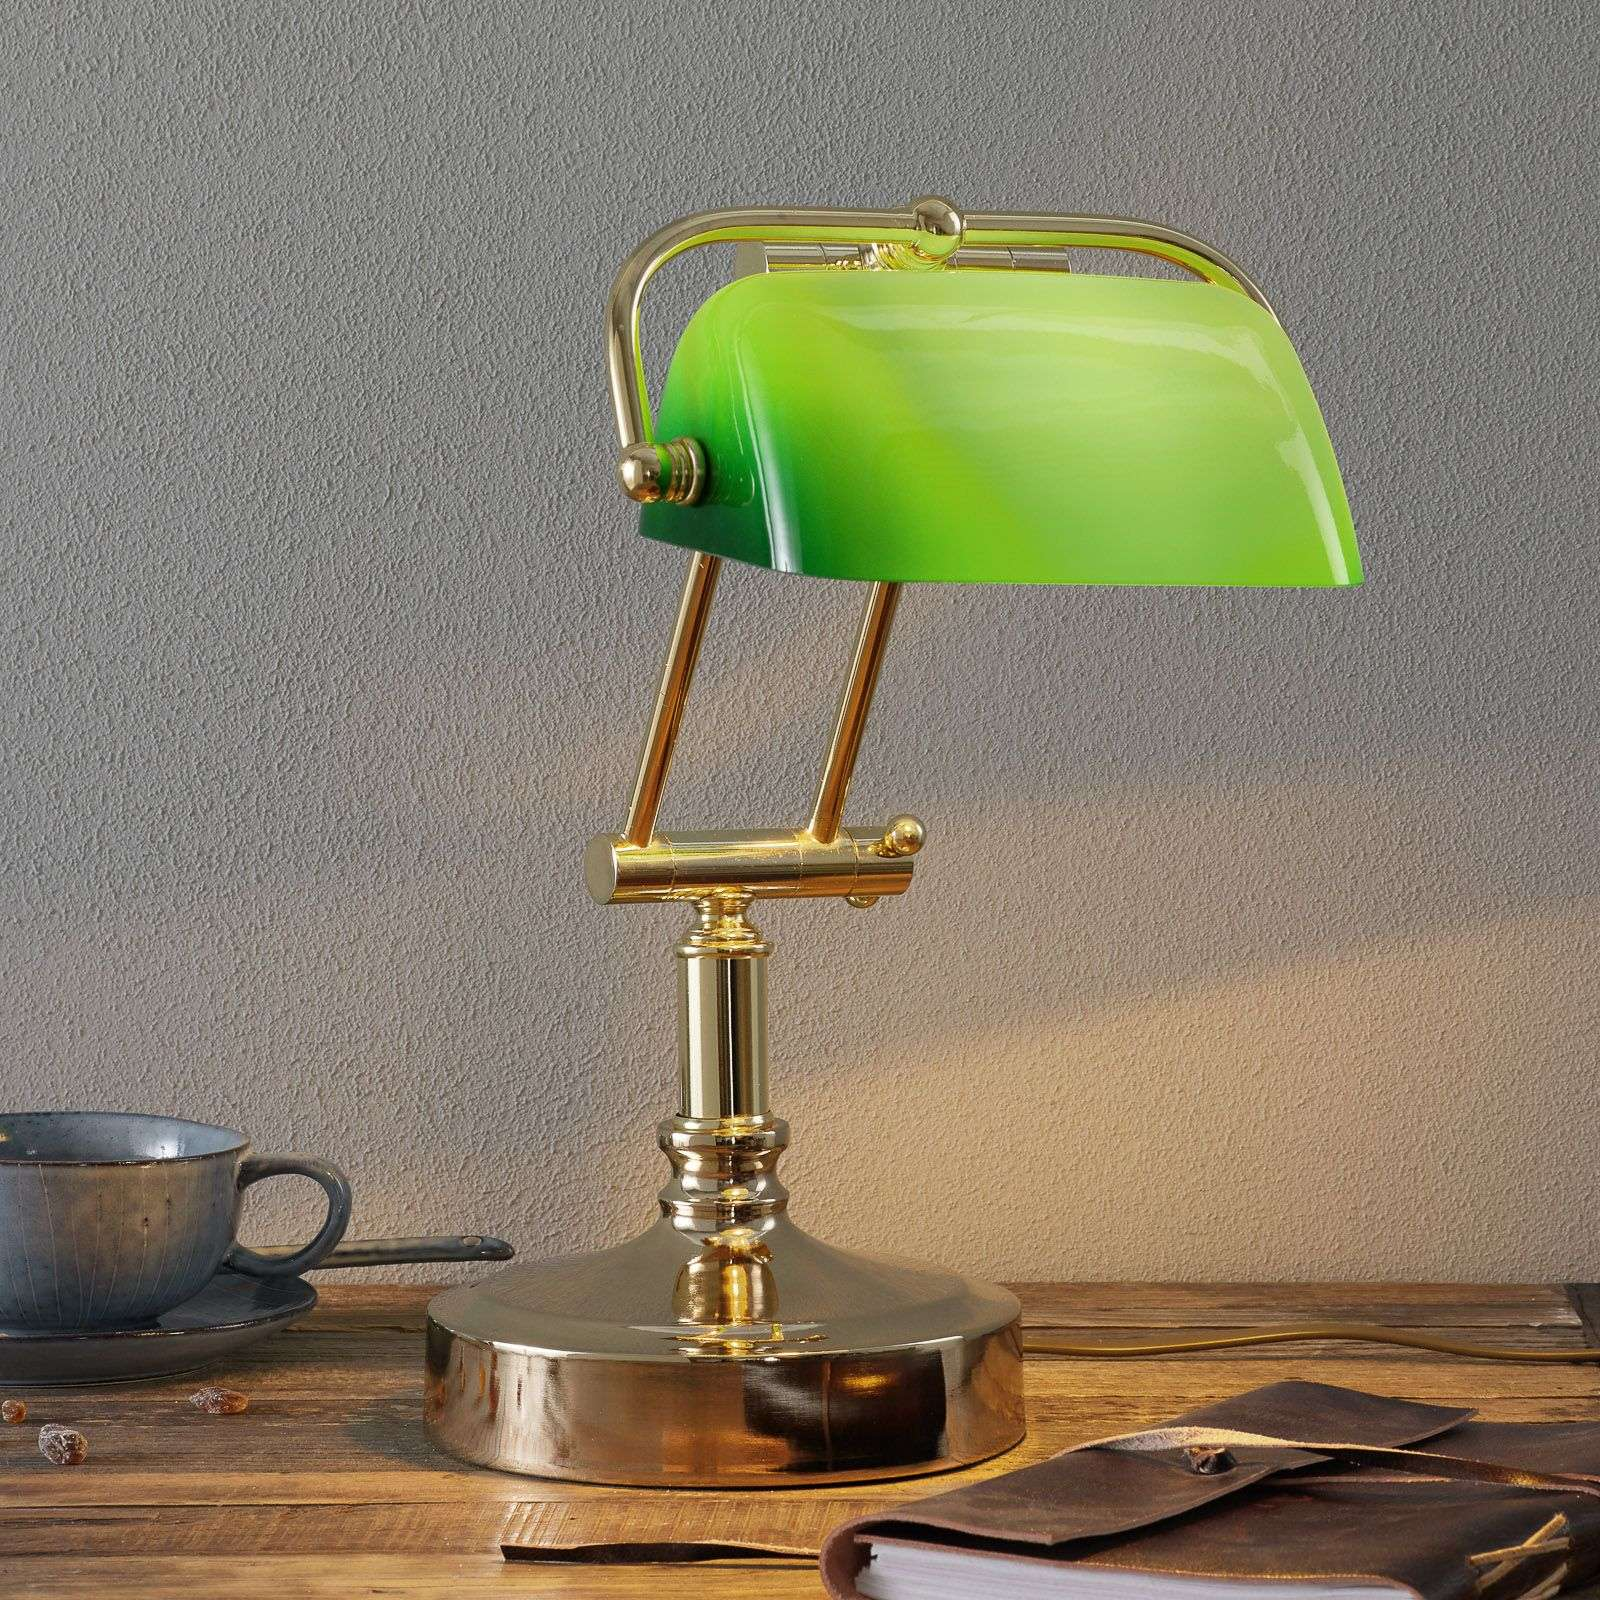 Bankers lamp steve with green lampshade lights bankers lamp steve with green lampshade 8553046 31 aloadofball Image collections